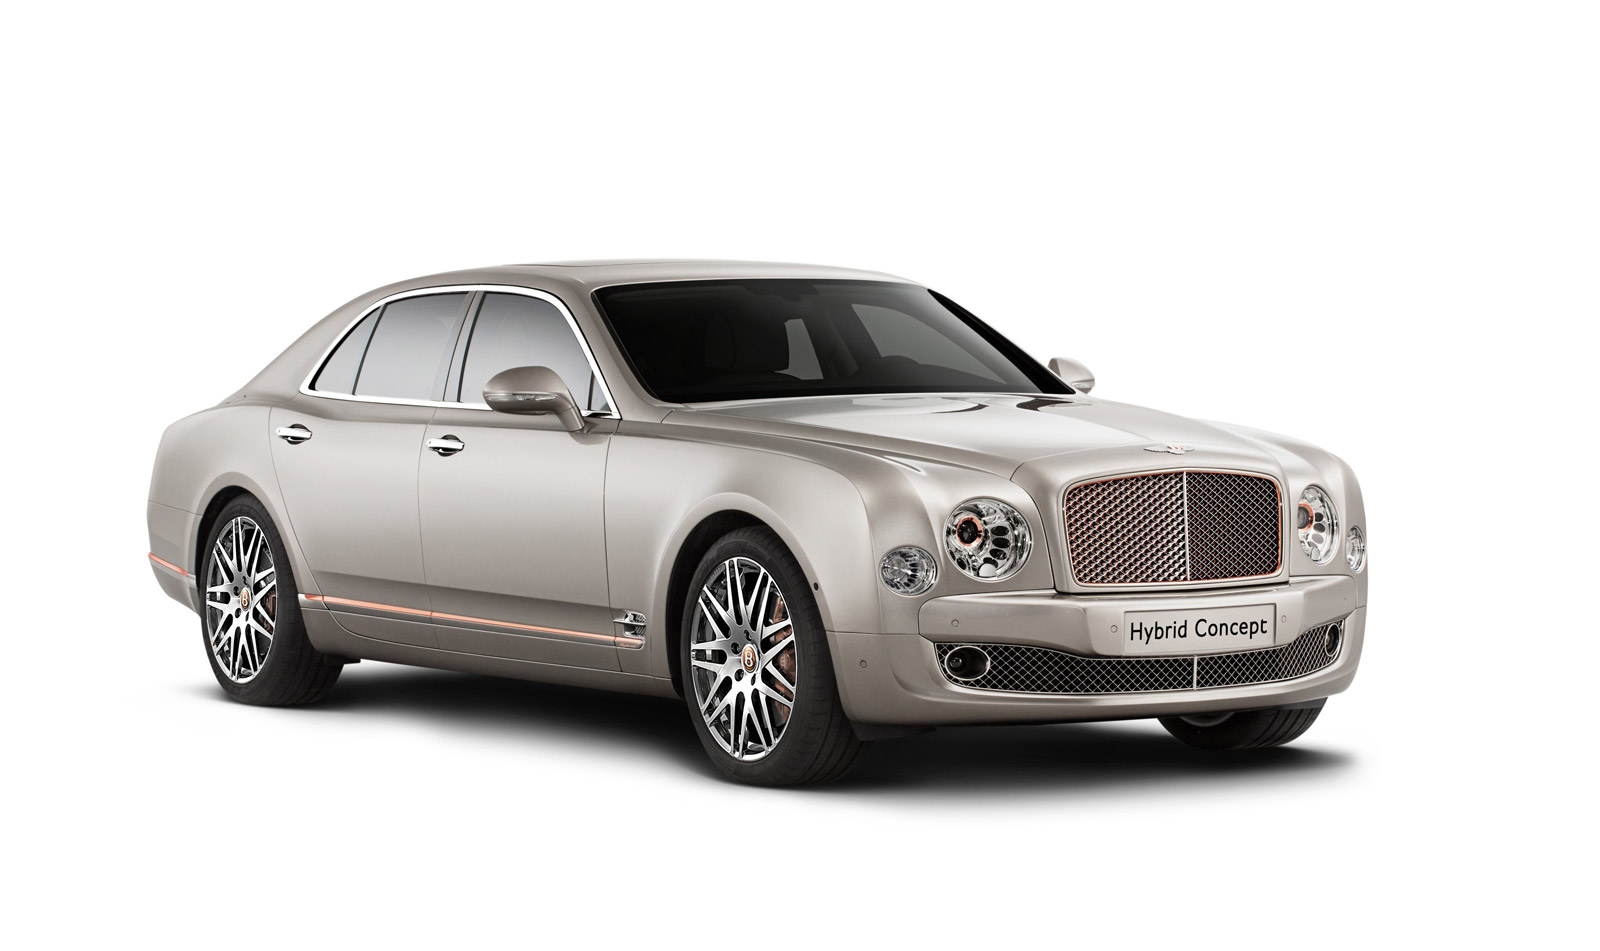 Luxury Vehicle: Bentley Previews Hybrid Tech In Mulsanne, Confirms It For